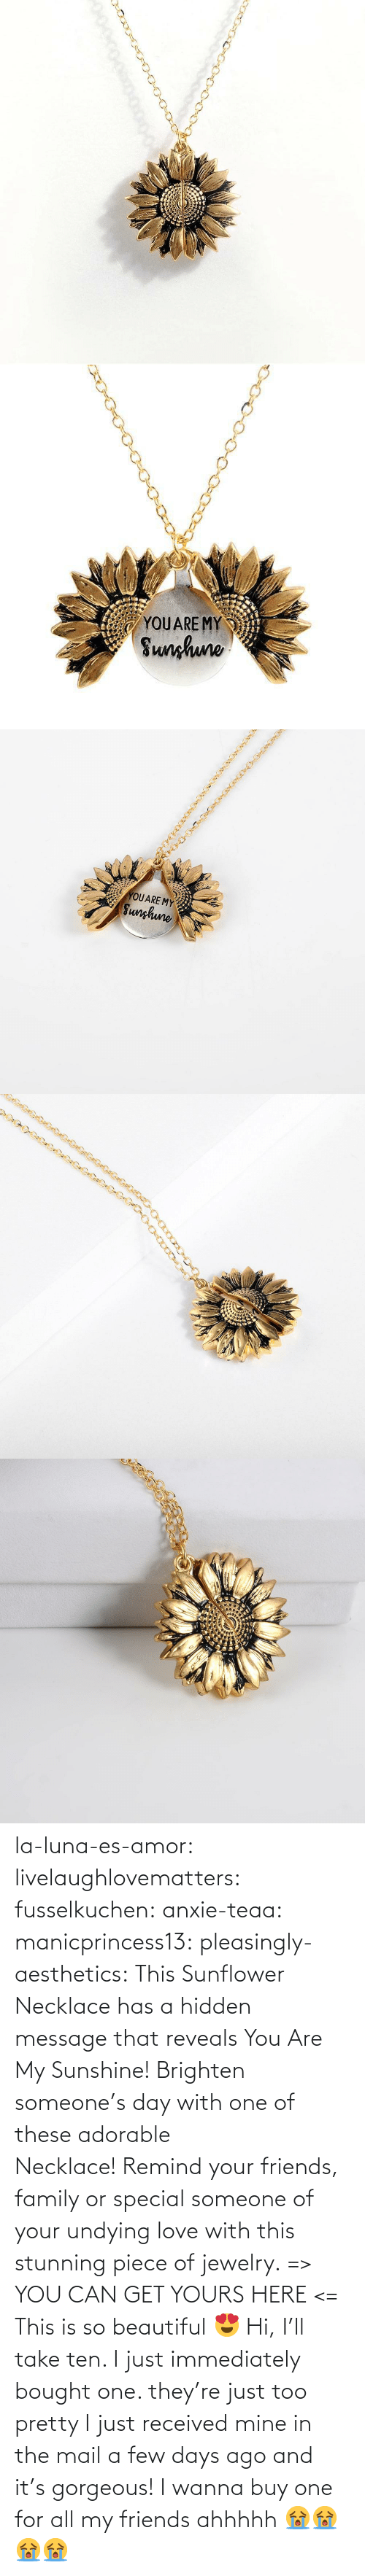 Gorgeous: YOUARE MY  Sunhuno   YOUARE MY  Sunghune la-luna-es-amor:  livelaughlovematters: fusselkuchen:  anxie-teaa:   manicprincess13:   pleasingly-aesthetics:  This Sunflower Necklace has a hidden message that reveals You Are My Sunshine! Brighten someone's day with one of these adorable Necklace! Remind your friends, family or special someone of your undying love with this stunning piece of jewelry. => YOU CAN GET YOURS HERE <=   This is so beautiful 😍    Hi, I'll take ten.    I just immediately bought one. they're just too pretty   I just received mine in the mail a few days ago and it's gorgeous!   I wanna buy one for all my friends ahhhhh 😭😭😭😭